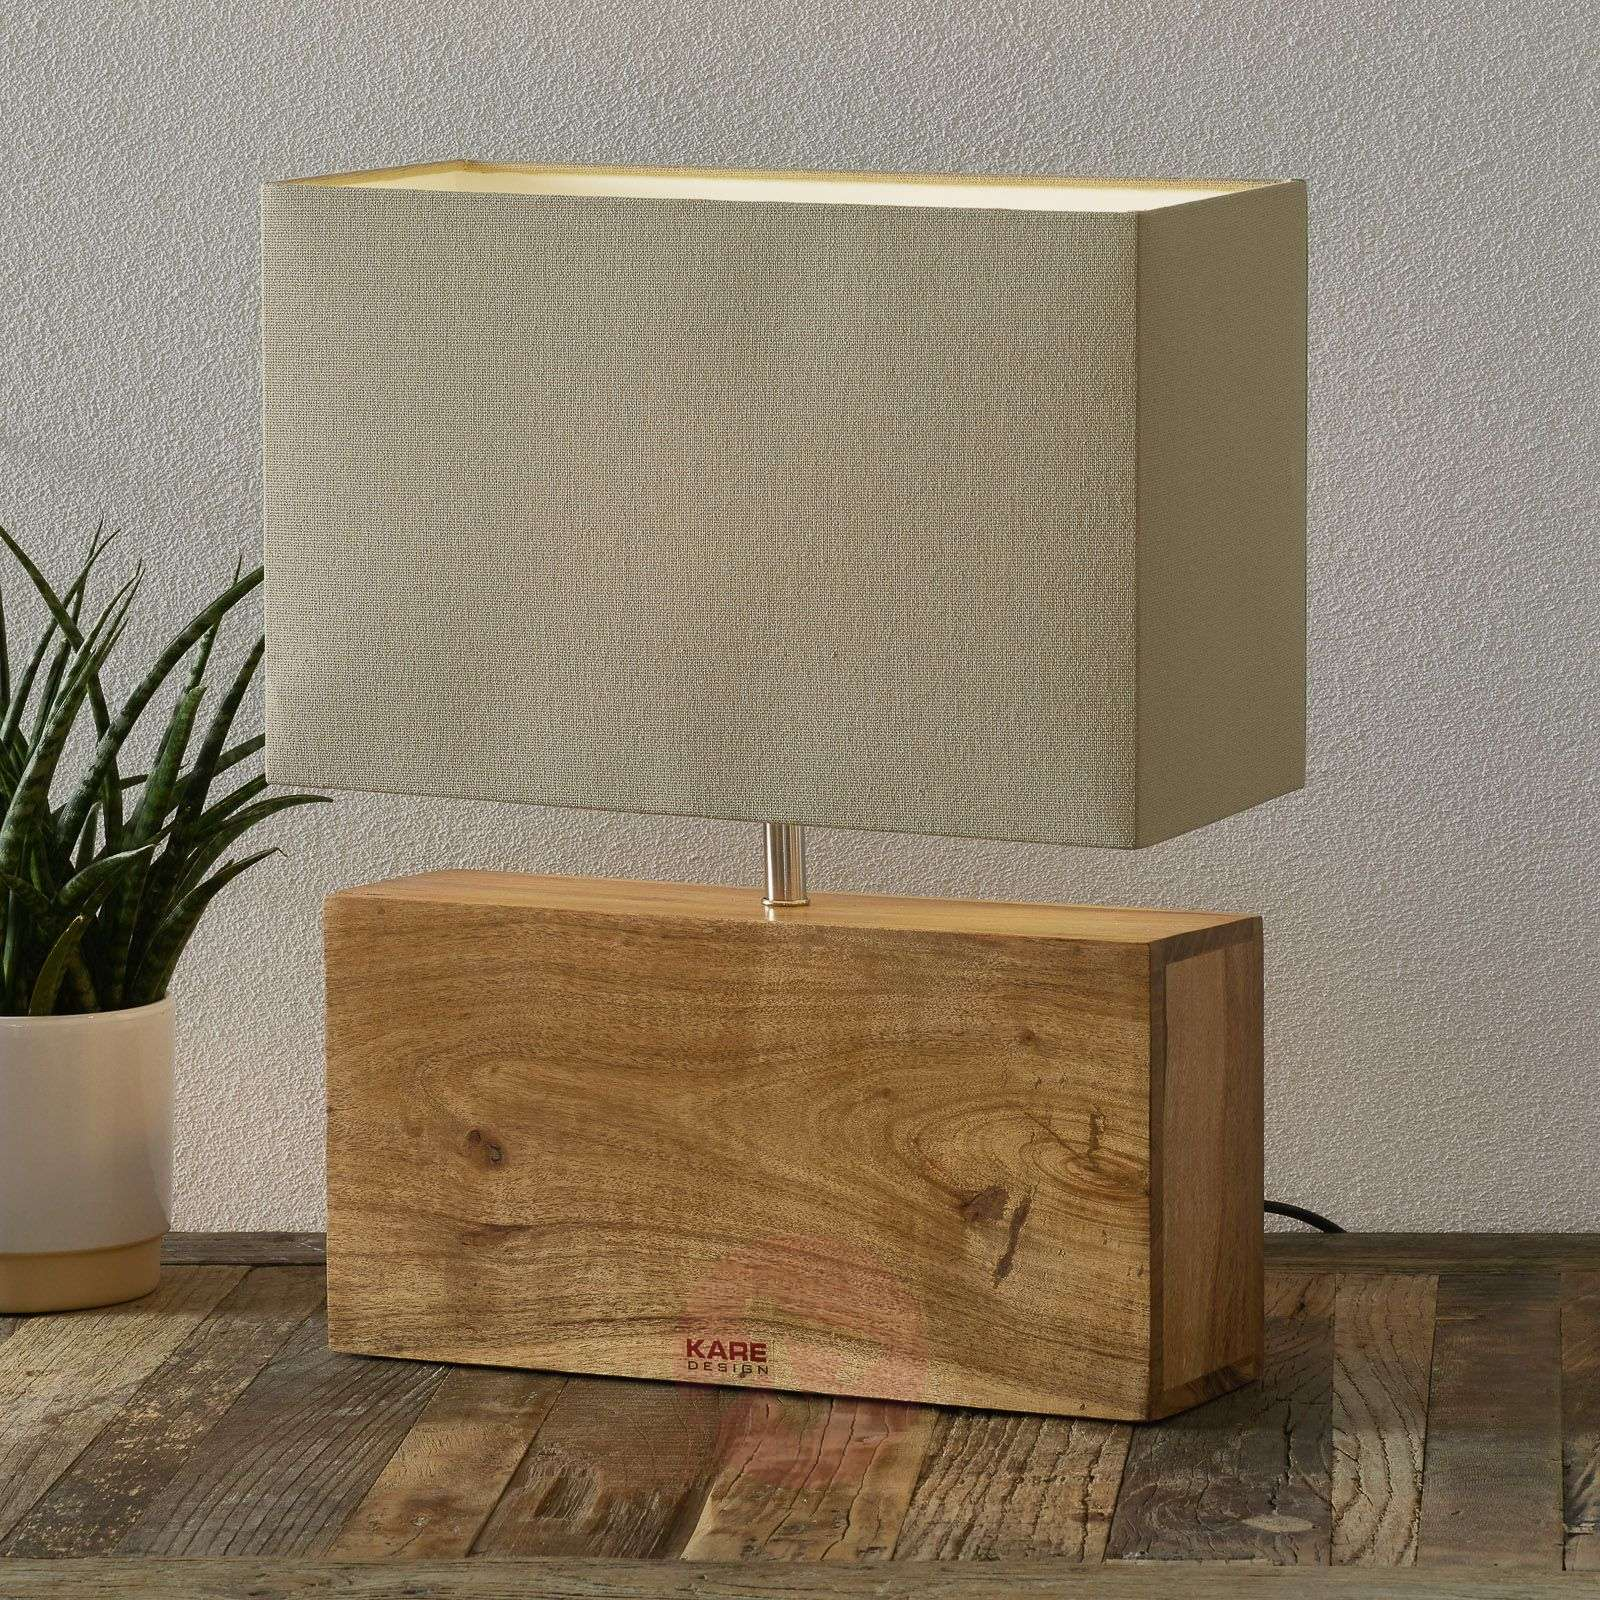 KARE Rectangular Wood wooden base table lamp-5517187-01